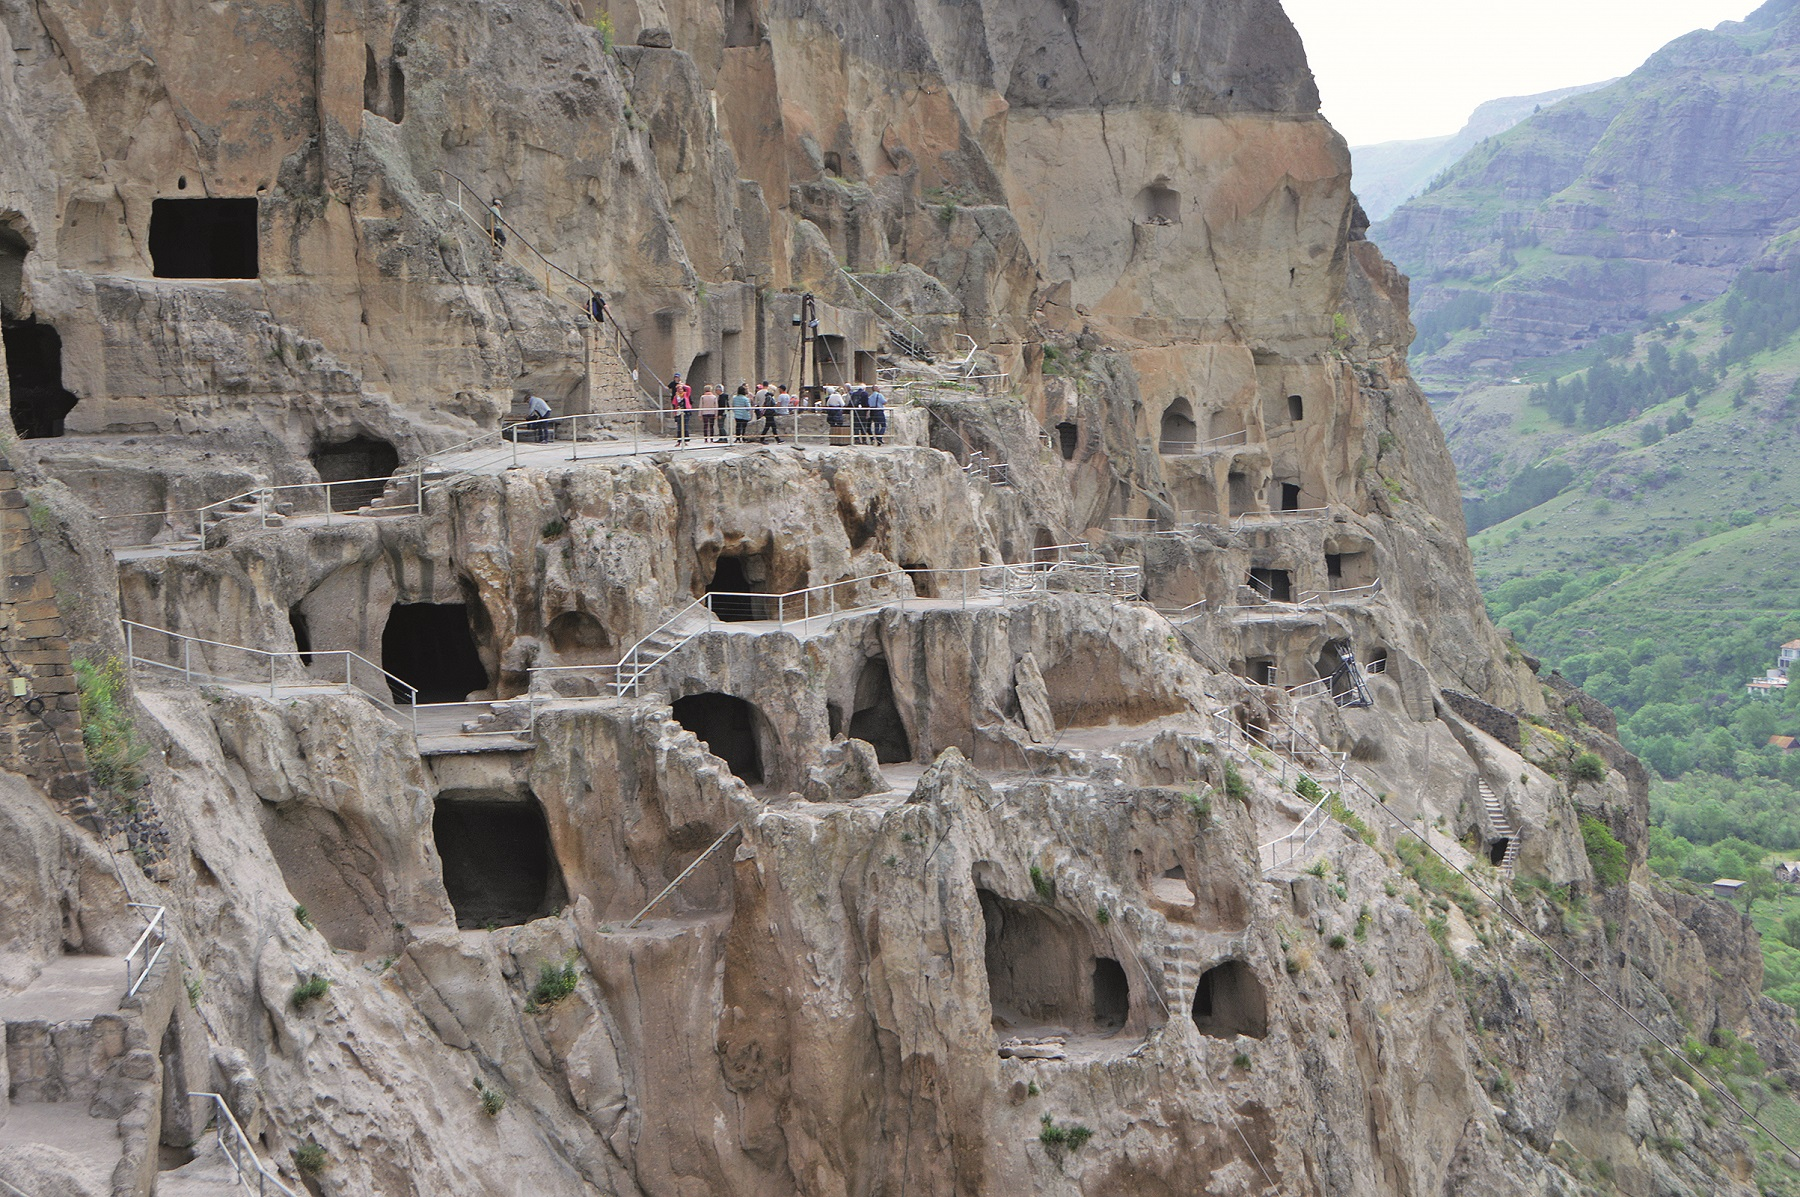 Hoehlenstadt (cave monastery) Vardzia (Wardzia) in the southwest of Georgia - here were once 2000 cave apartments, which were connected by stairs, galleries and terraces, recorded on 20.05.2019 | usage worldwide